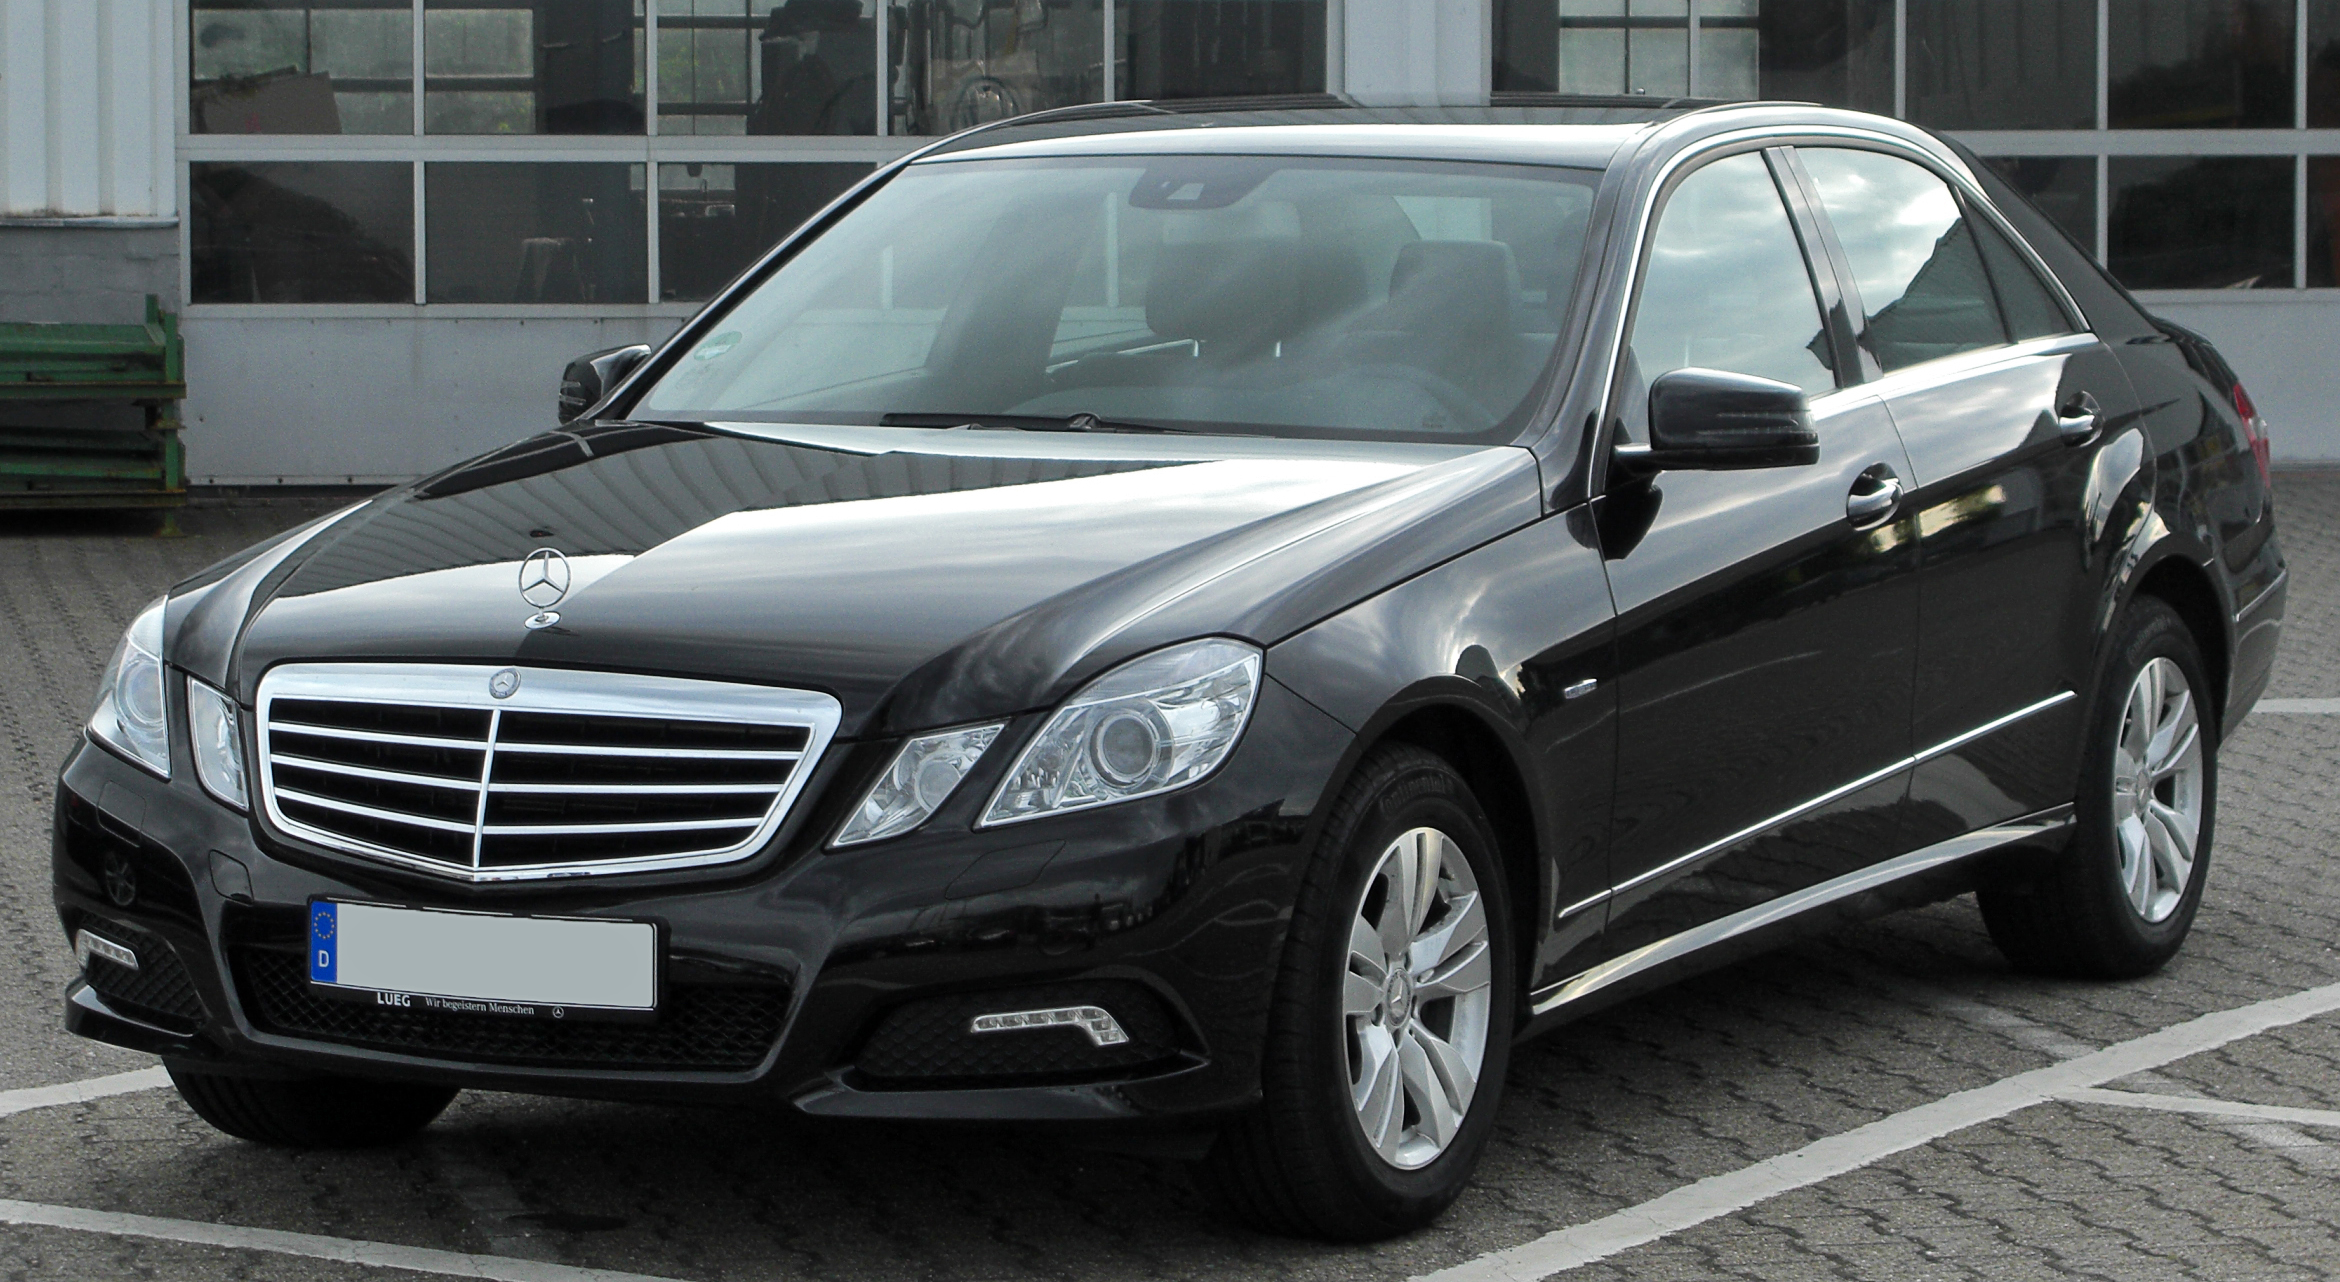 2012 Chrysler 200 Grill >> File:Mercedes E 200 CDI BlueEFFICIENCY Avantgarde (W212) front-1 20100621.jpg - Wikimedia Commons